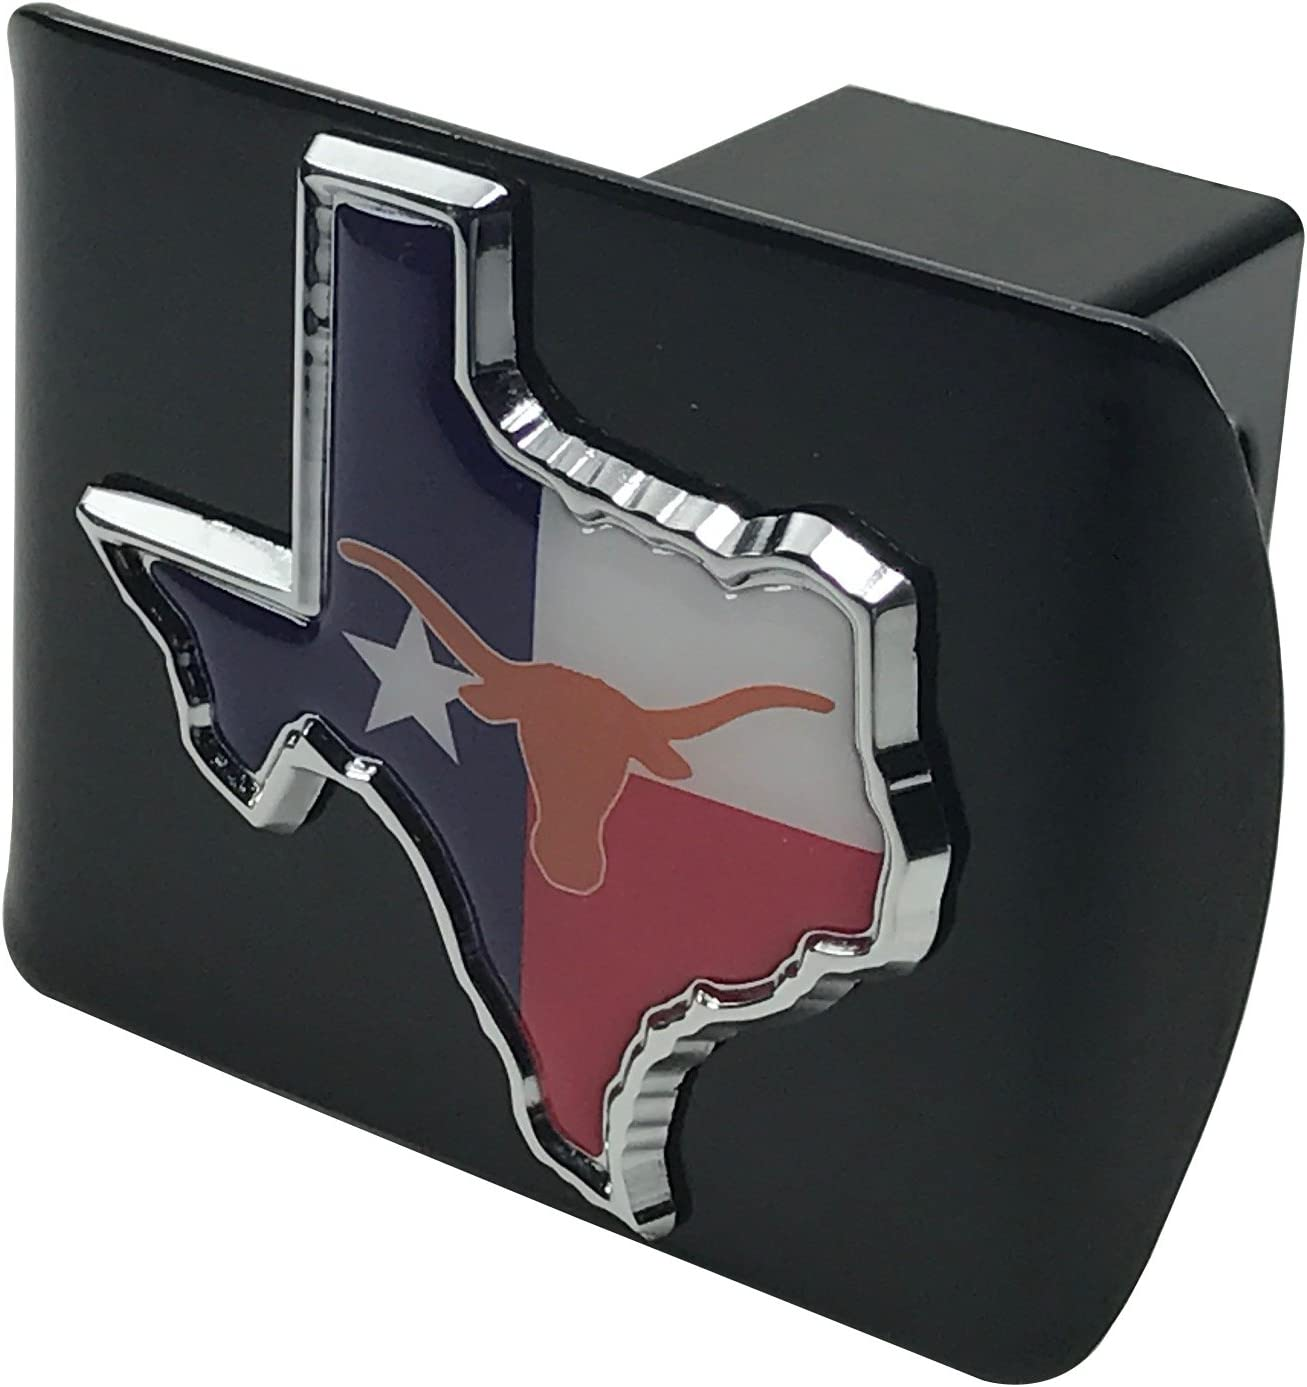 AMG Auto Emblems Premium State of Texas Flag Texas Shaped SOLID METAL Heavy Duty Hitch Cover